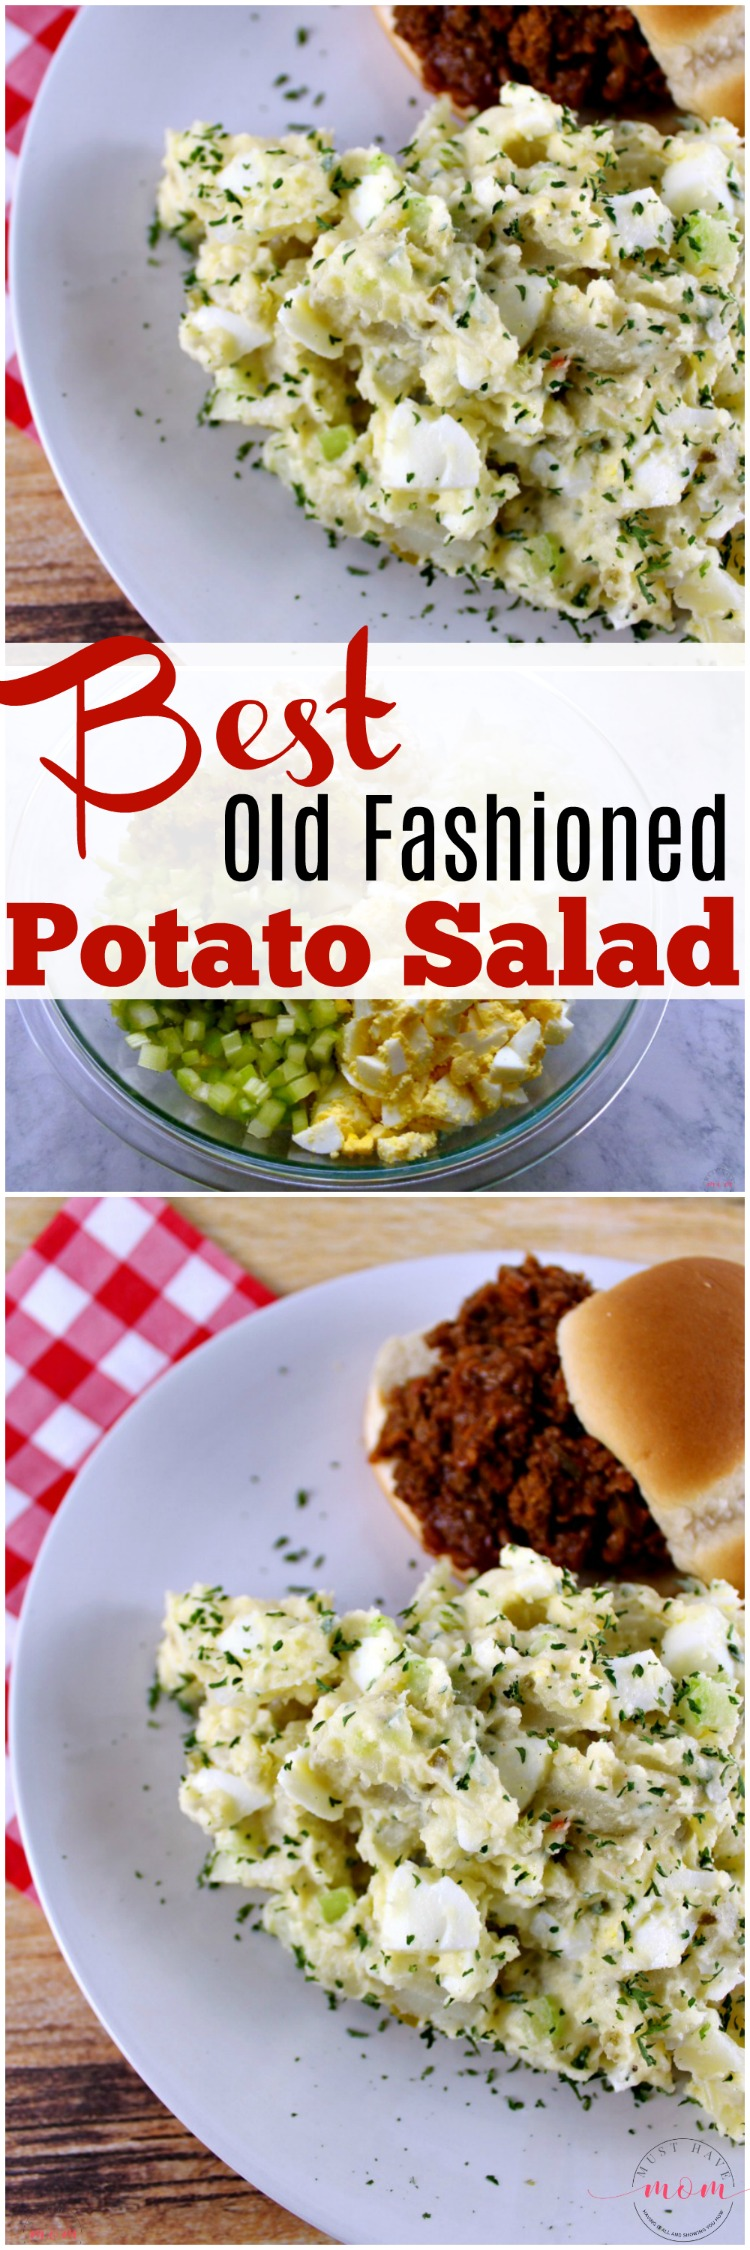 Best old fashioned potato salad recipe! As far as potato recipes go this is a favorite! I love old fashioned recipes like grandma made.